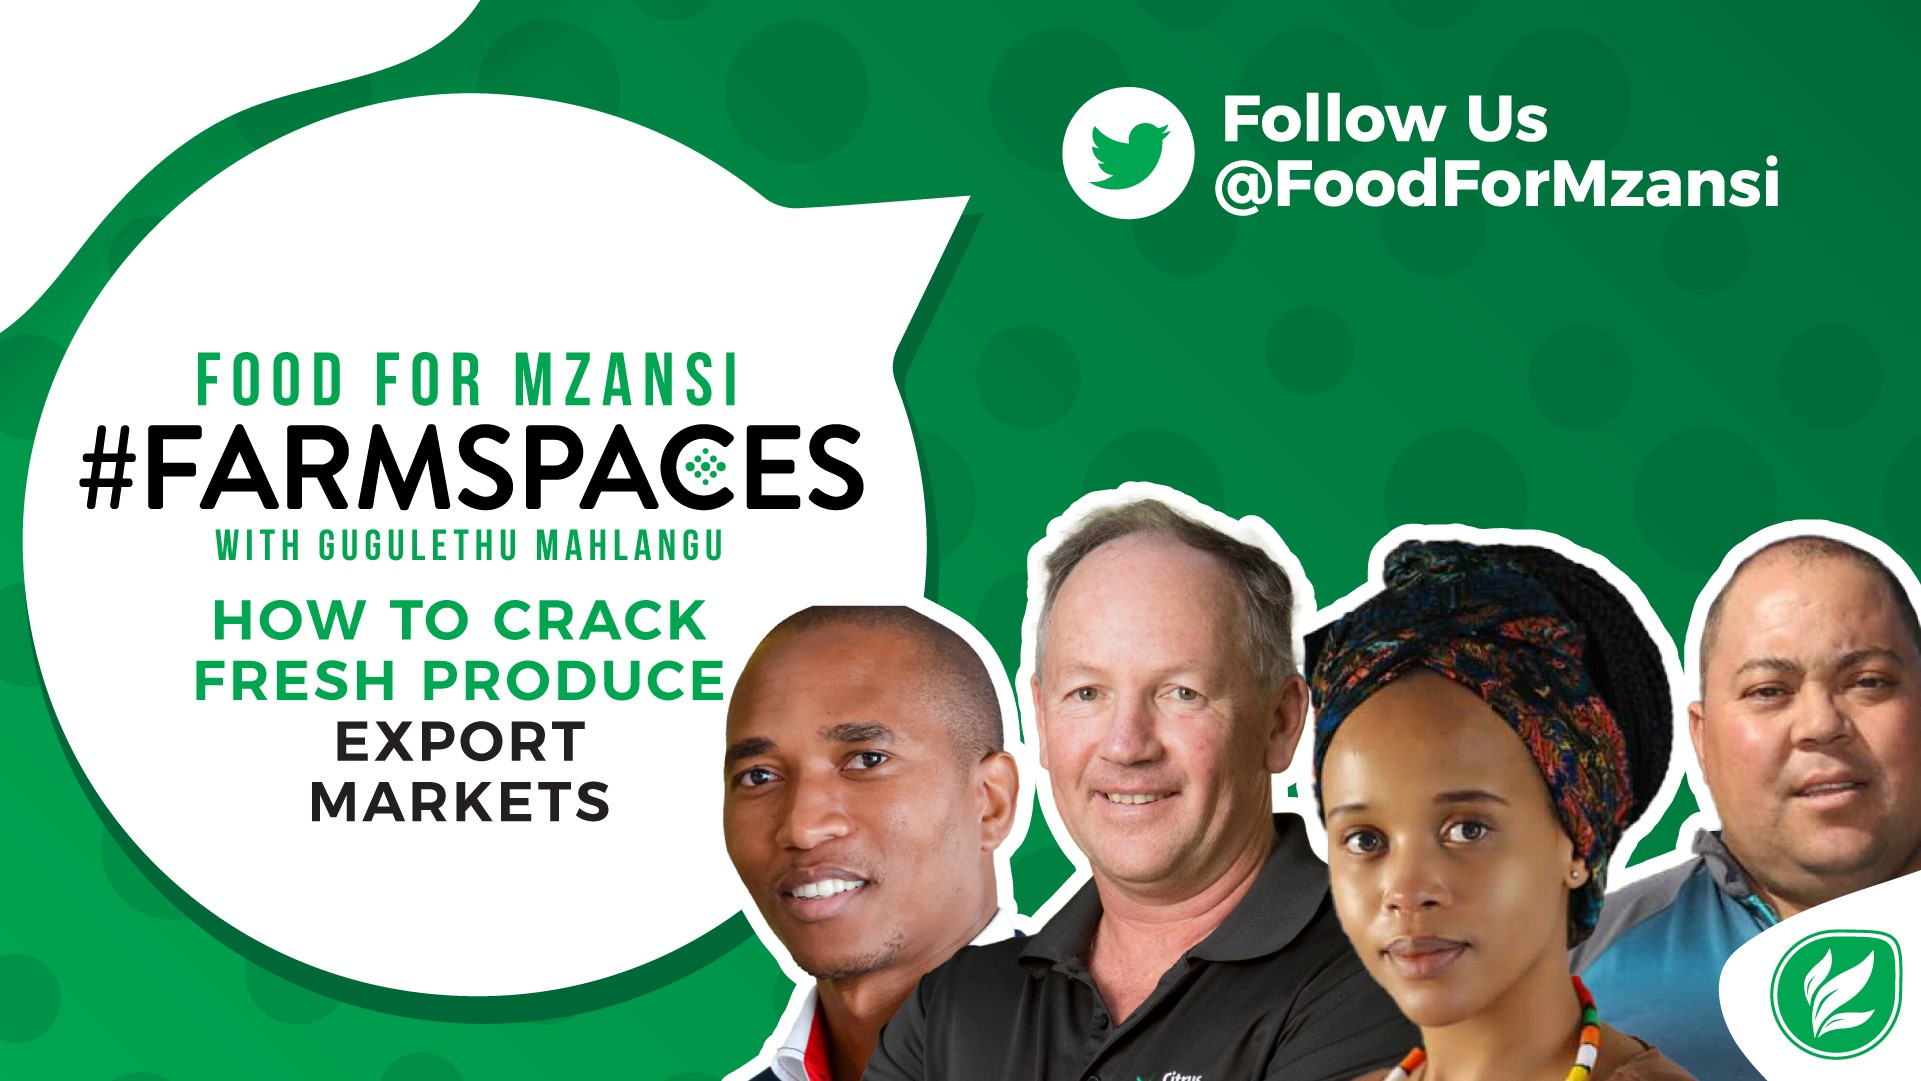 agriculture events: Join us on Twitter for Food For Mzansi #FarmSpaces, every Monday at 6:00pm. This week's #FarmSpaces features, from left, Sifiso Ntombela, Justin Chadwick, and Gugulethu Mahlangu. Photo: Supplied/Food For Mzansi